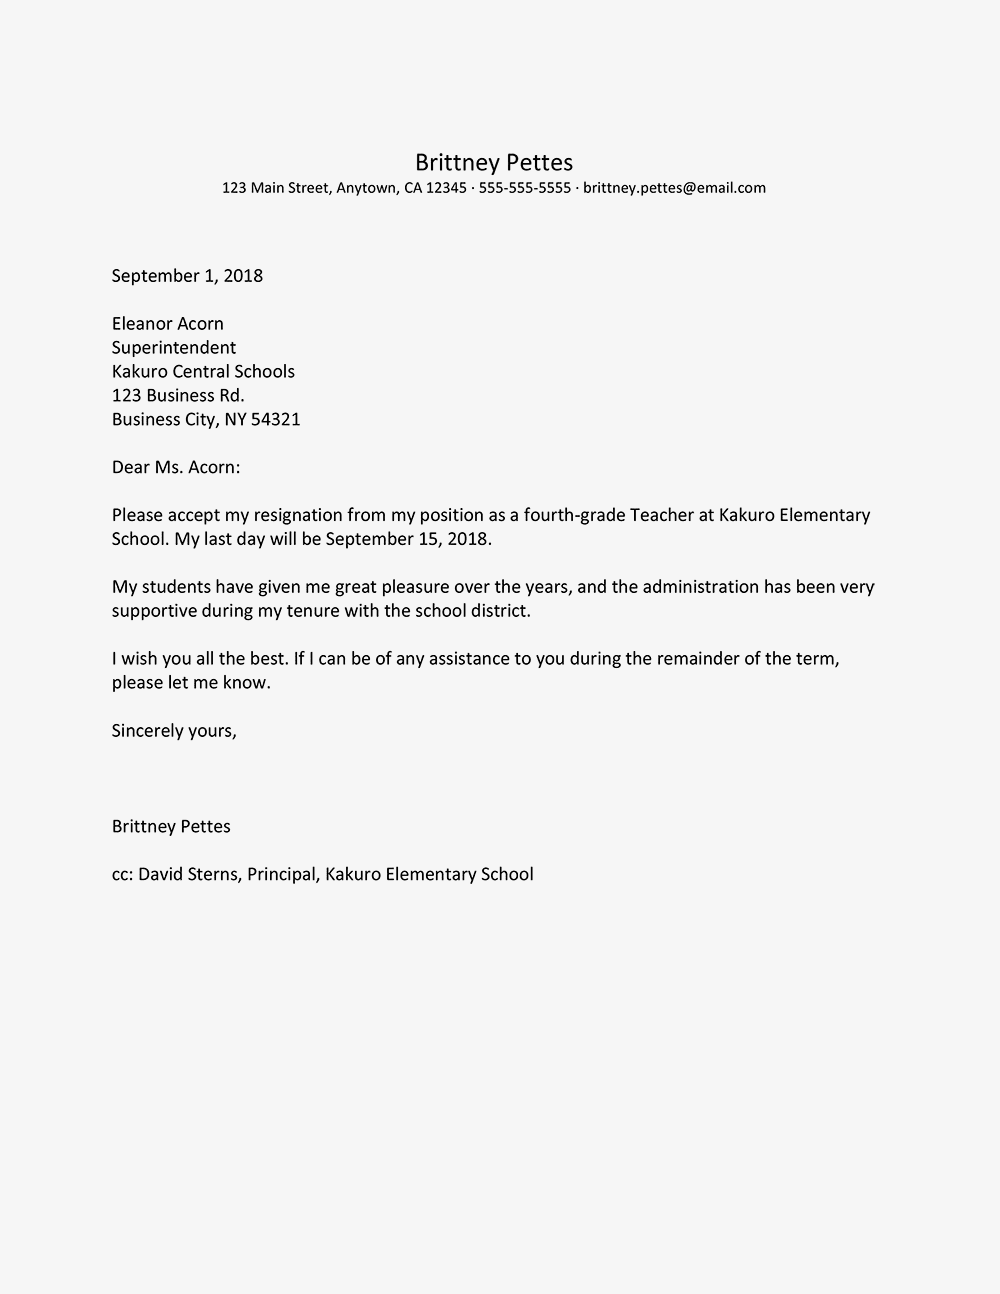 Image Result For Teacher Resignation Letter Resignation Letter Sample Resignation Letter Teacher Resignation Letter